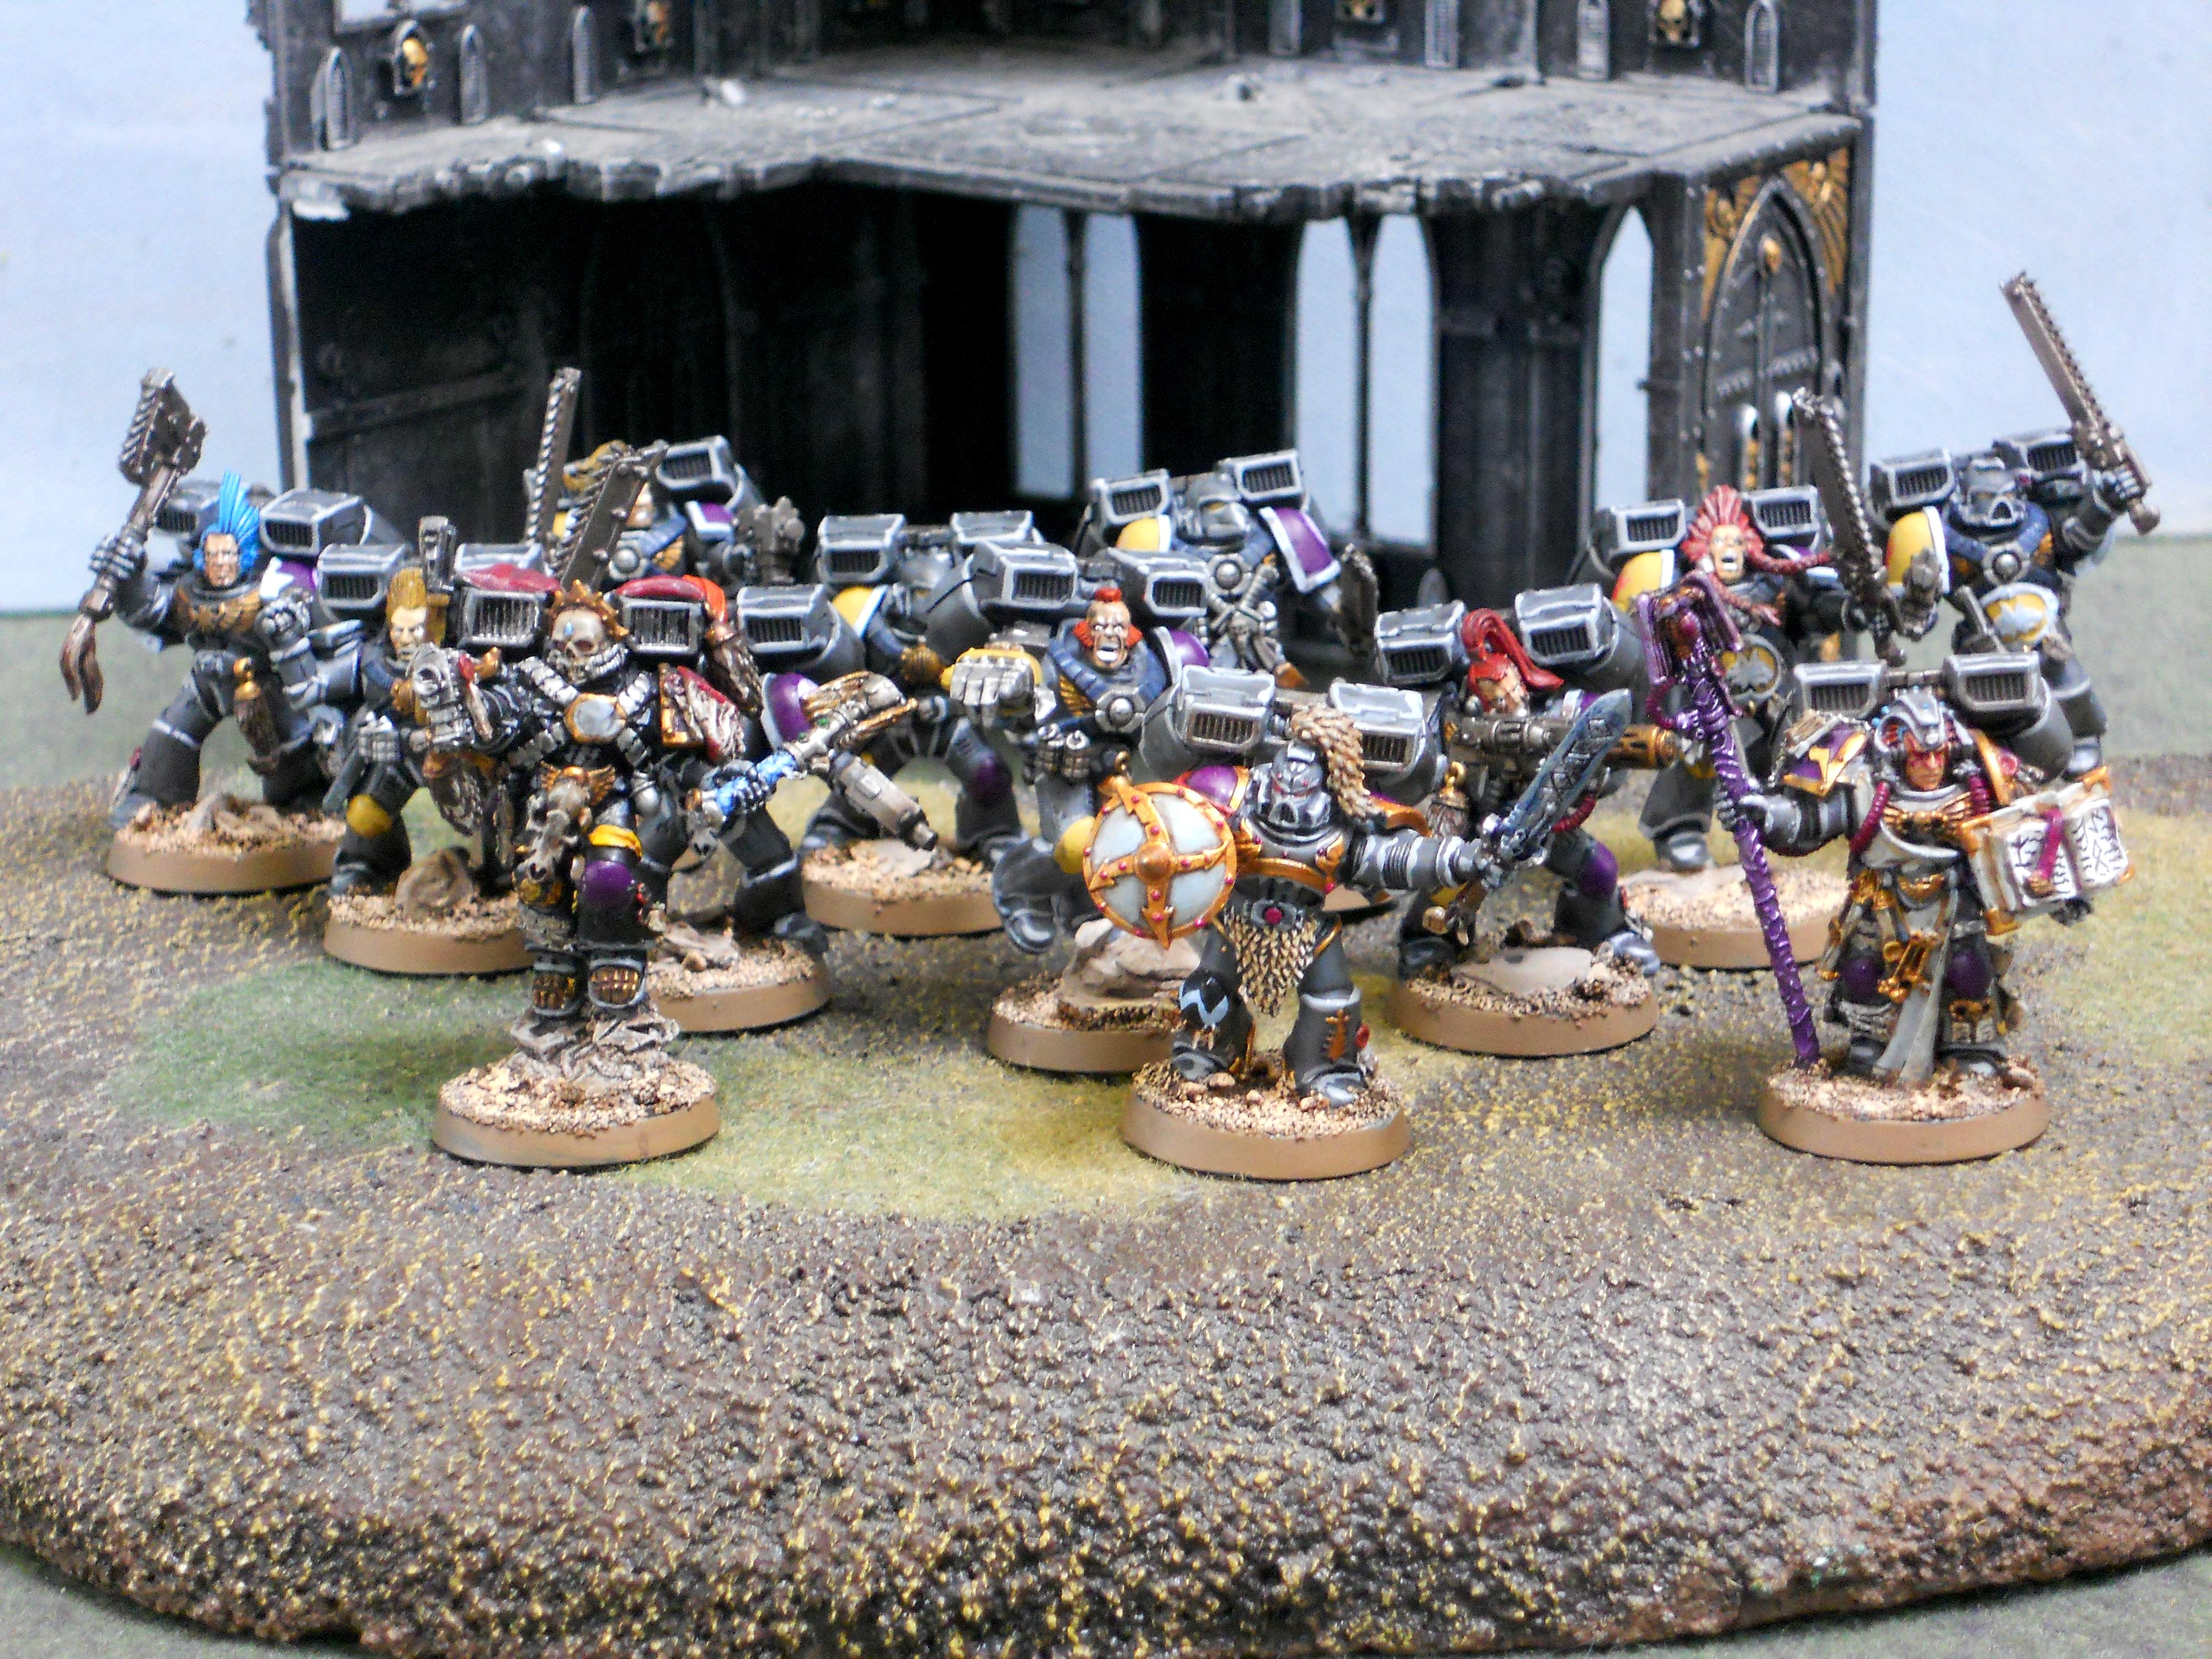 Lemartes, Pre-heresy, Rune Priest, Skyclaws, Space Wolves, Wolf Lord, Wolf Priest